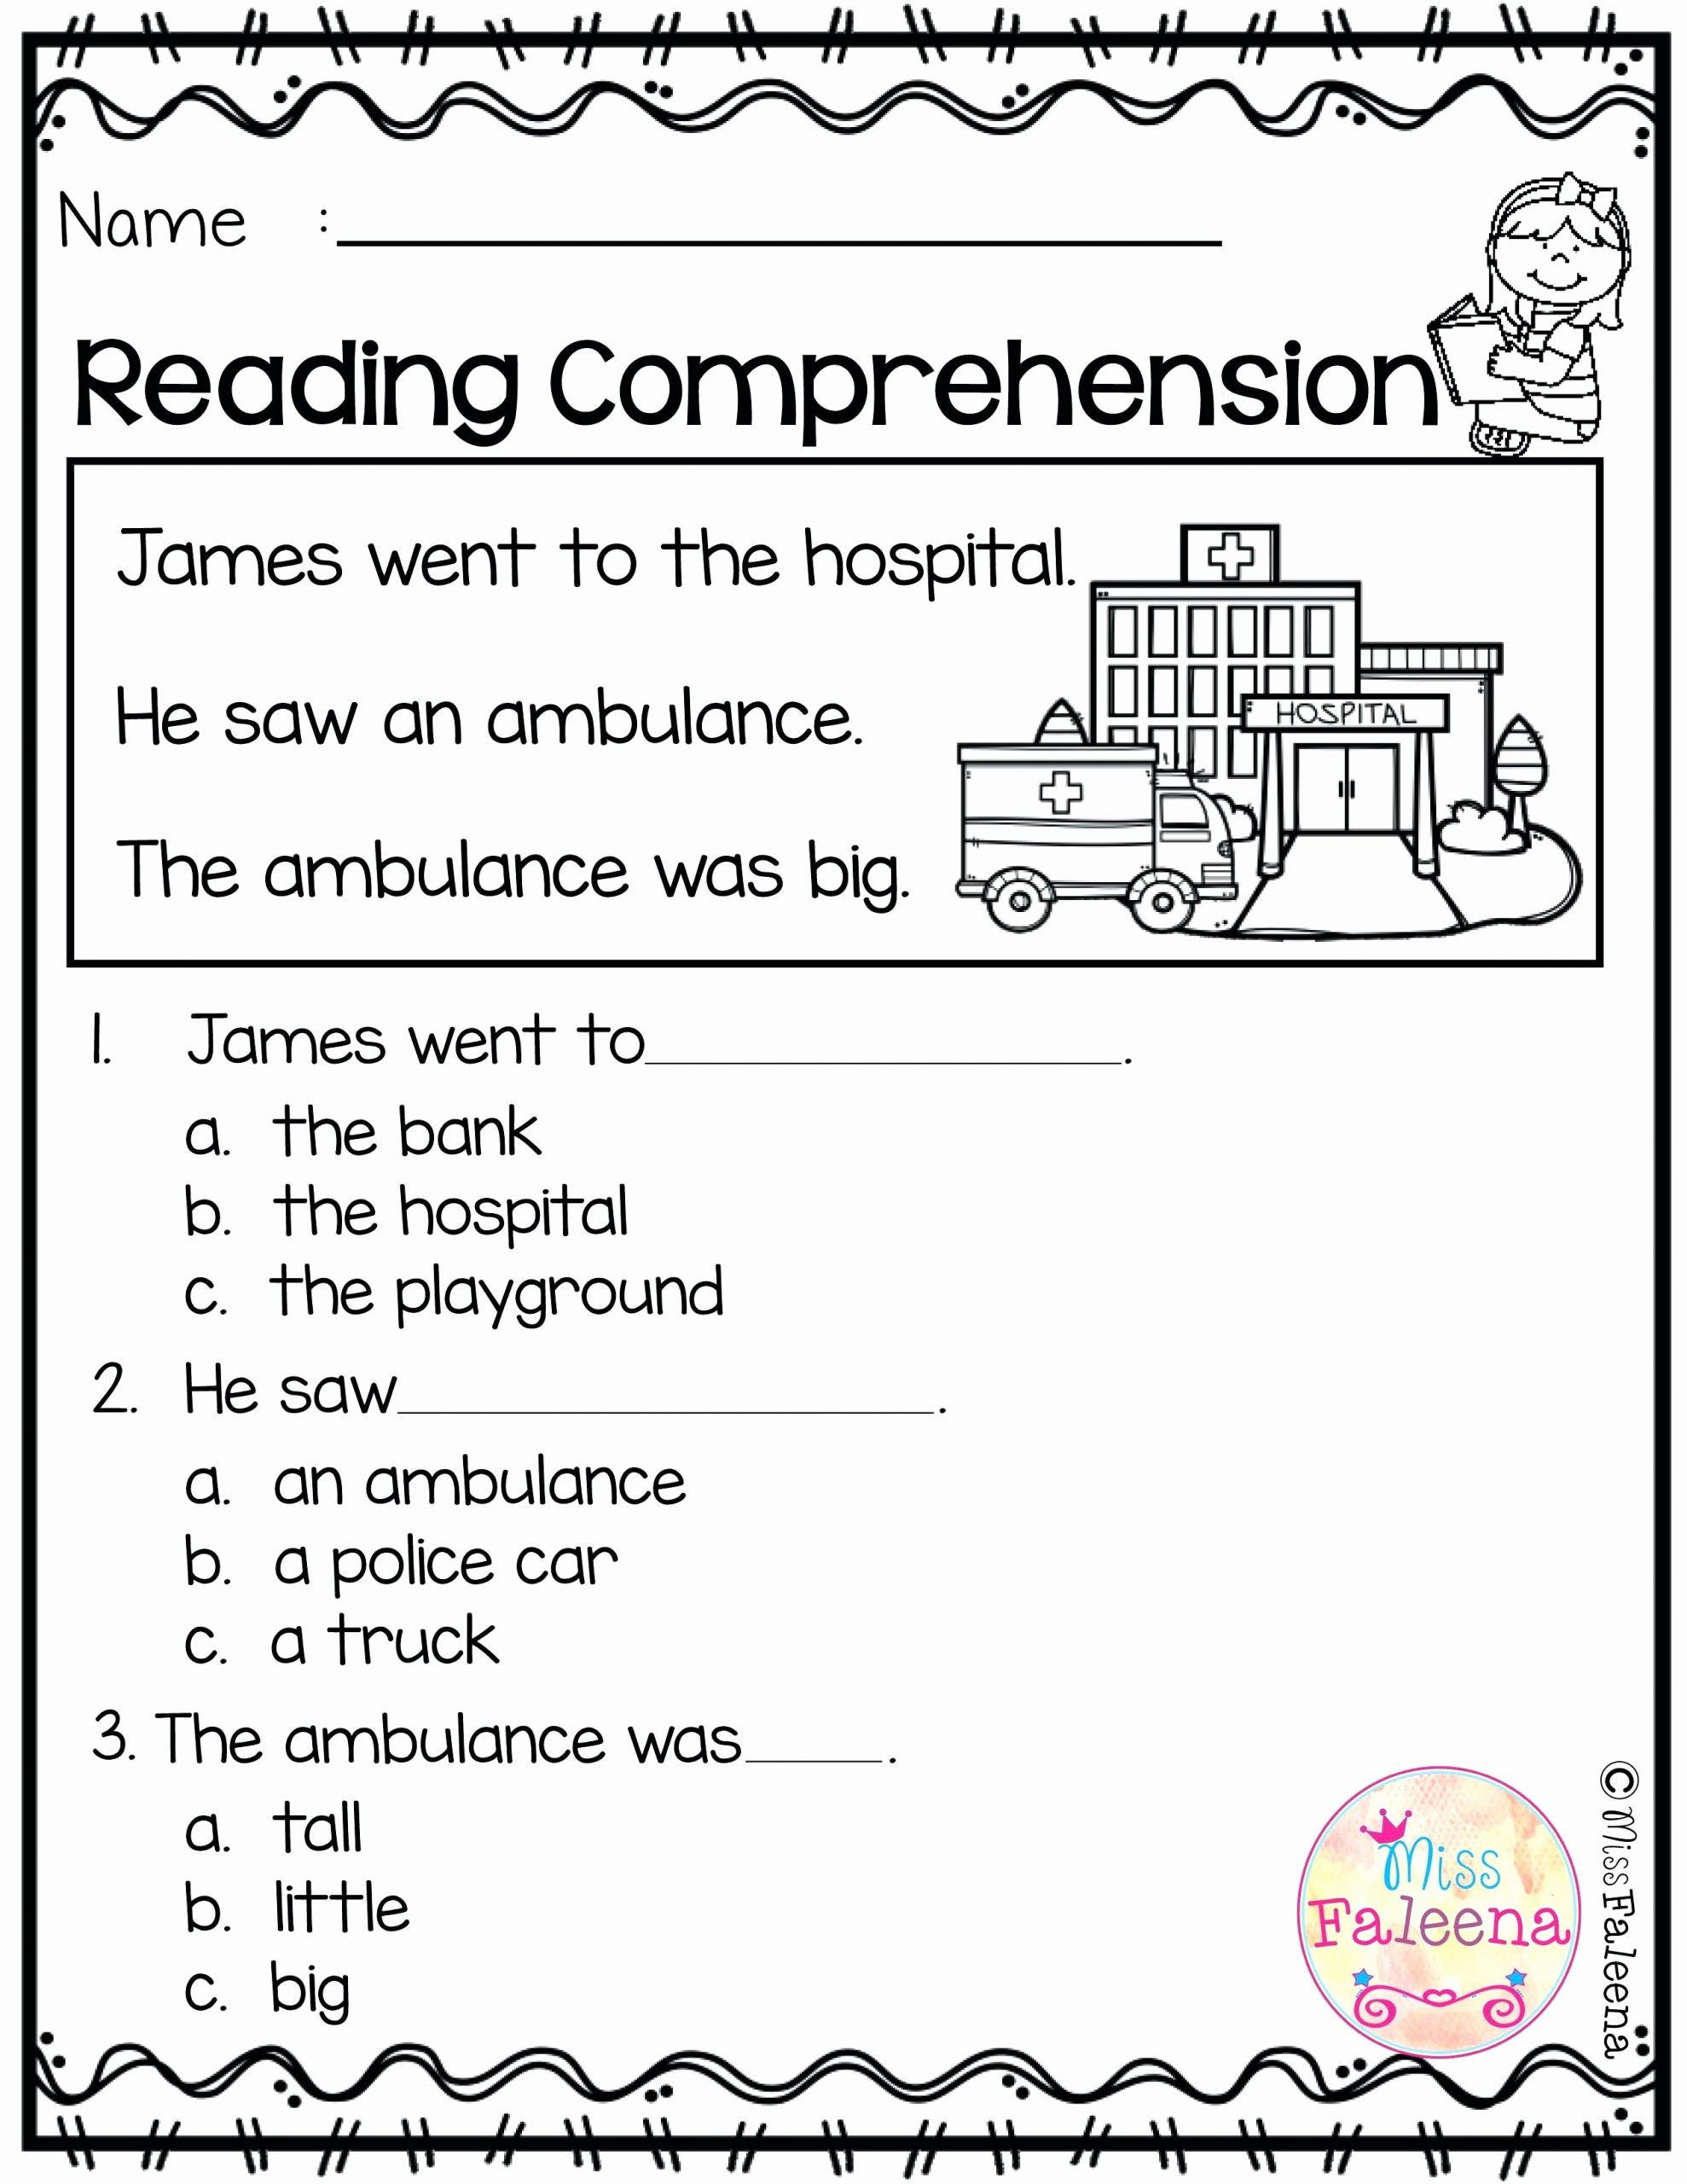 Reading Comprehension Worksheets Kindergarten Learn Line Kindergarten Grade Reading Worksheets